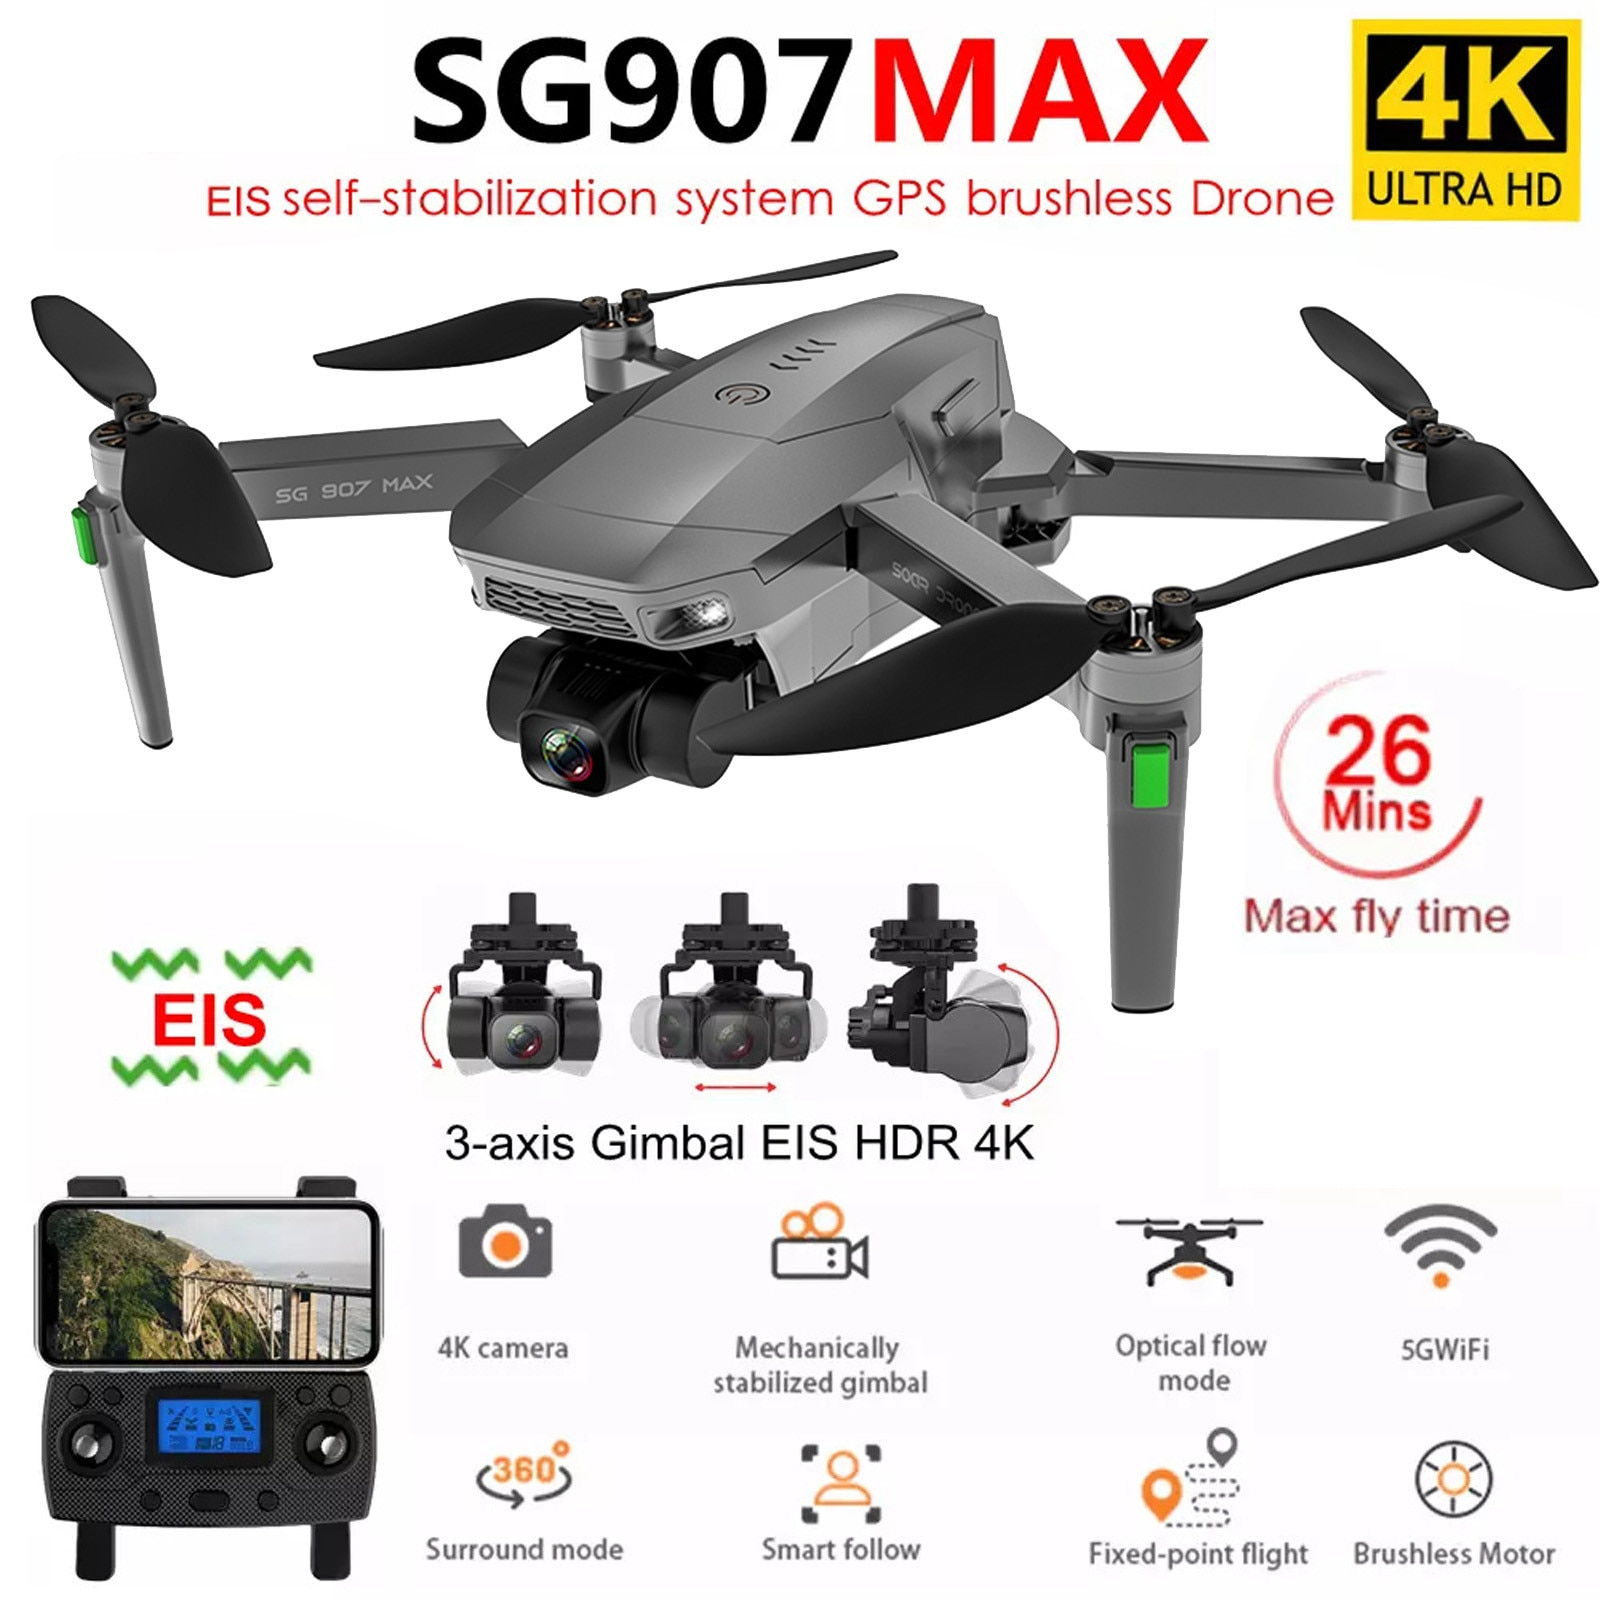 2021 New Sg907 Max/sg907 Pro Drone Gps 5g Wifi 4K HD Mechanical 3-axis Gimbal Camera Supports Tf Card RC Drones Distance 800m #Z